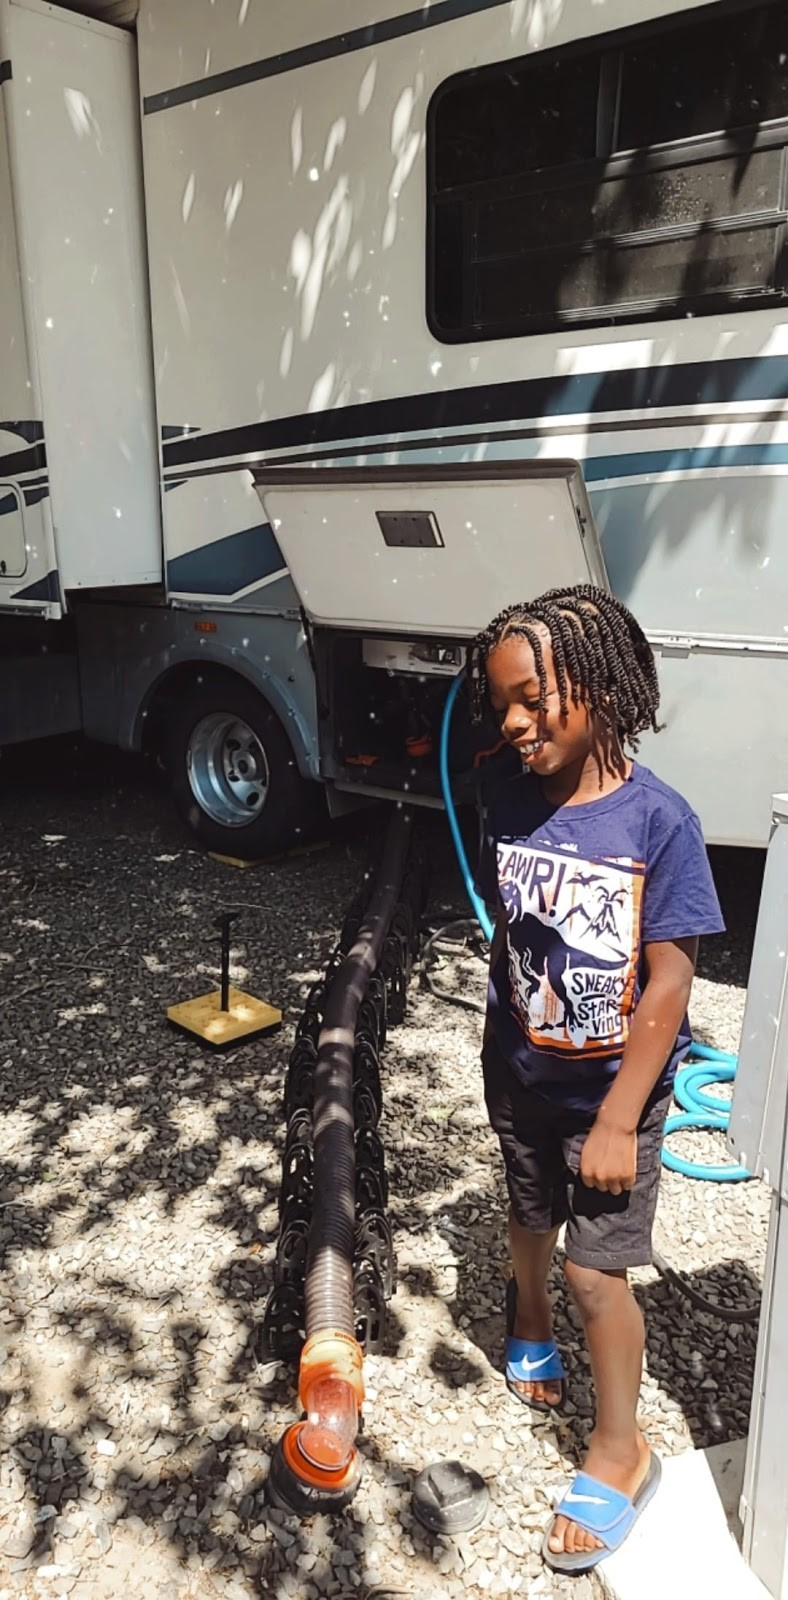 10 Life Skills Your Kids Can Learn Through RVing 20